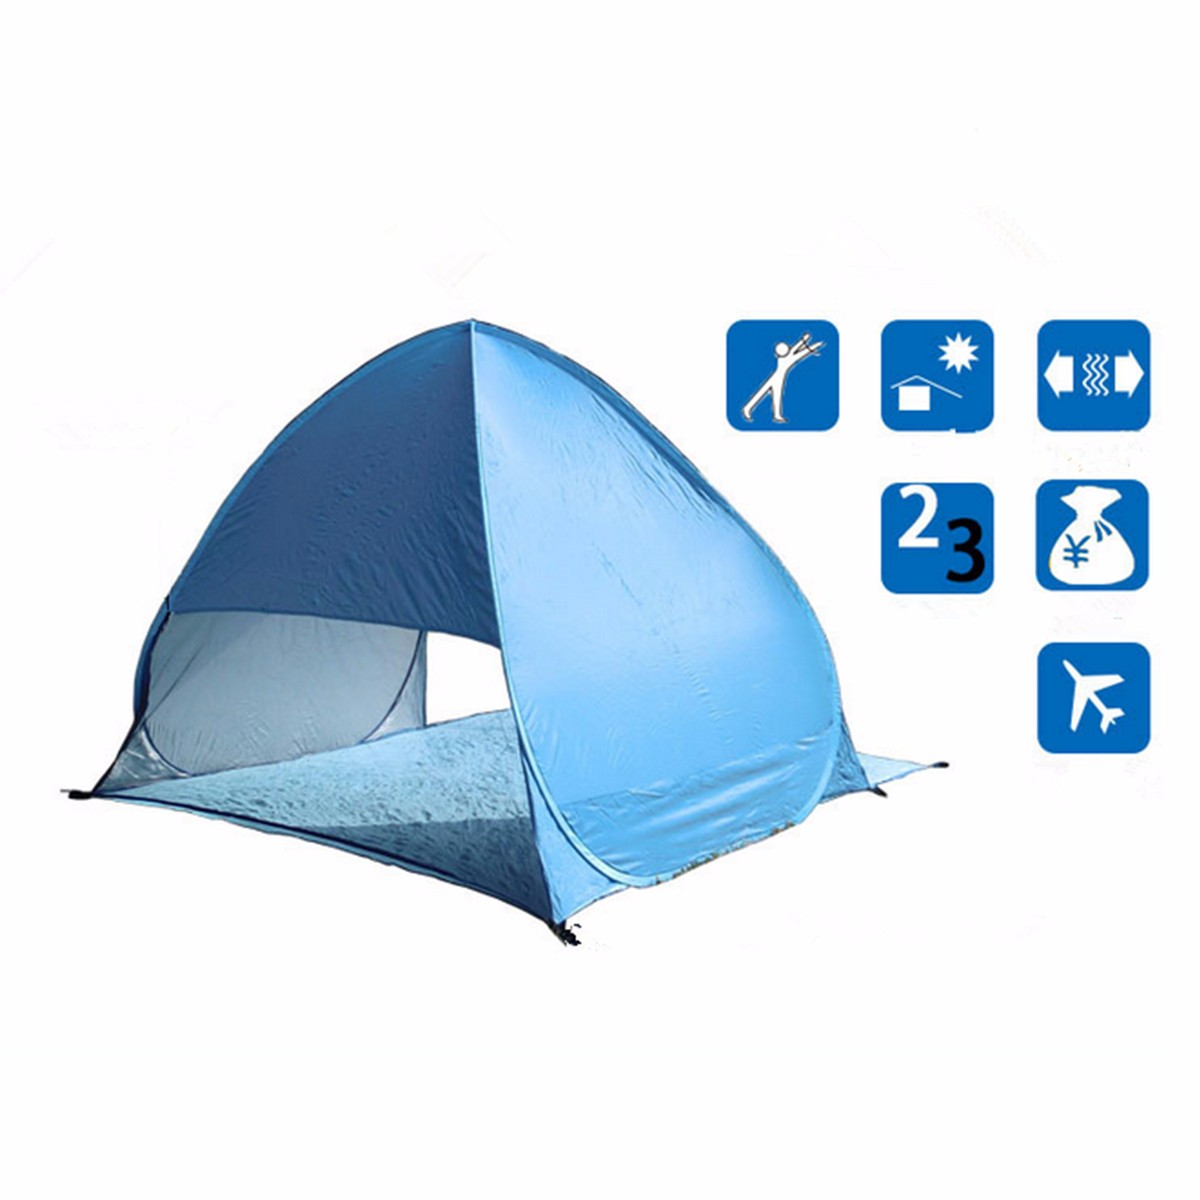 Beach Tent With UPF 40 Sun Protection camping festival shelter New